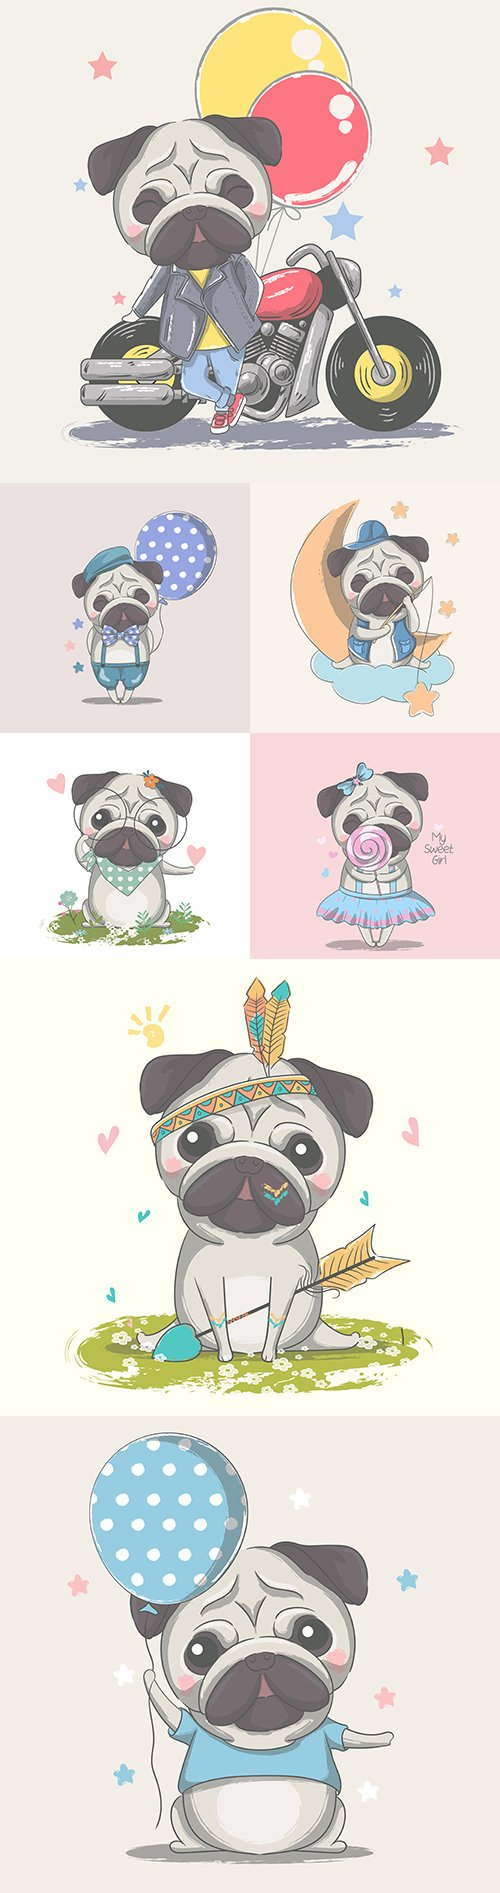 Painted cute little mops cartoon illustration